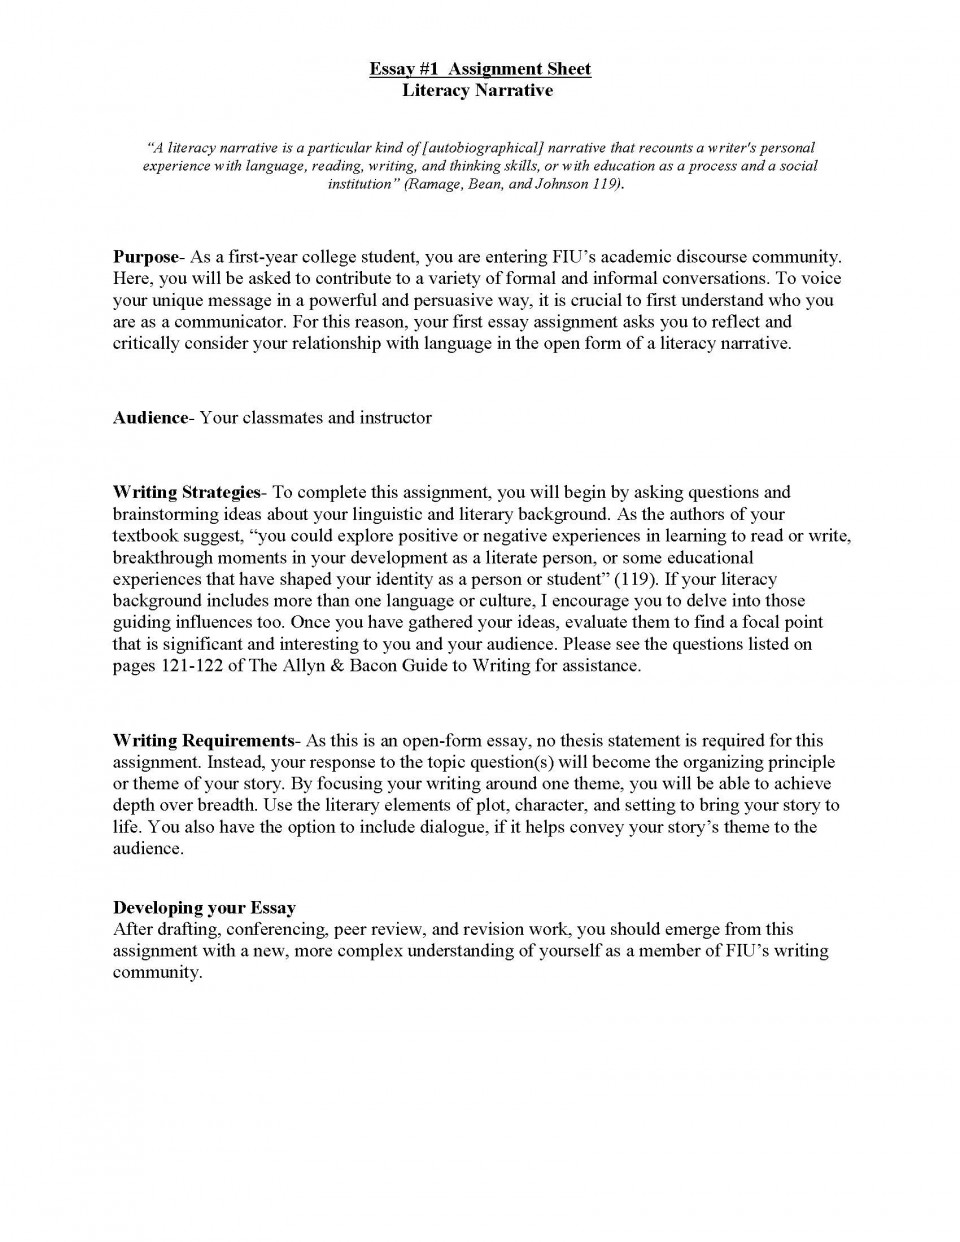 017 Literacy Narrative Unit Assignment Spring 2012 Page 1s Of Essays Essay Rare Examples Personal For High School Example About Experience Pdf Composition Topics 960